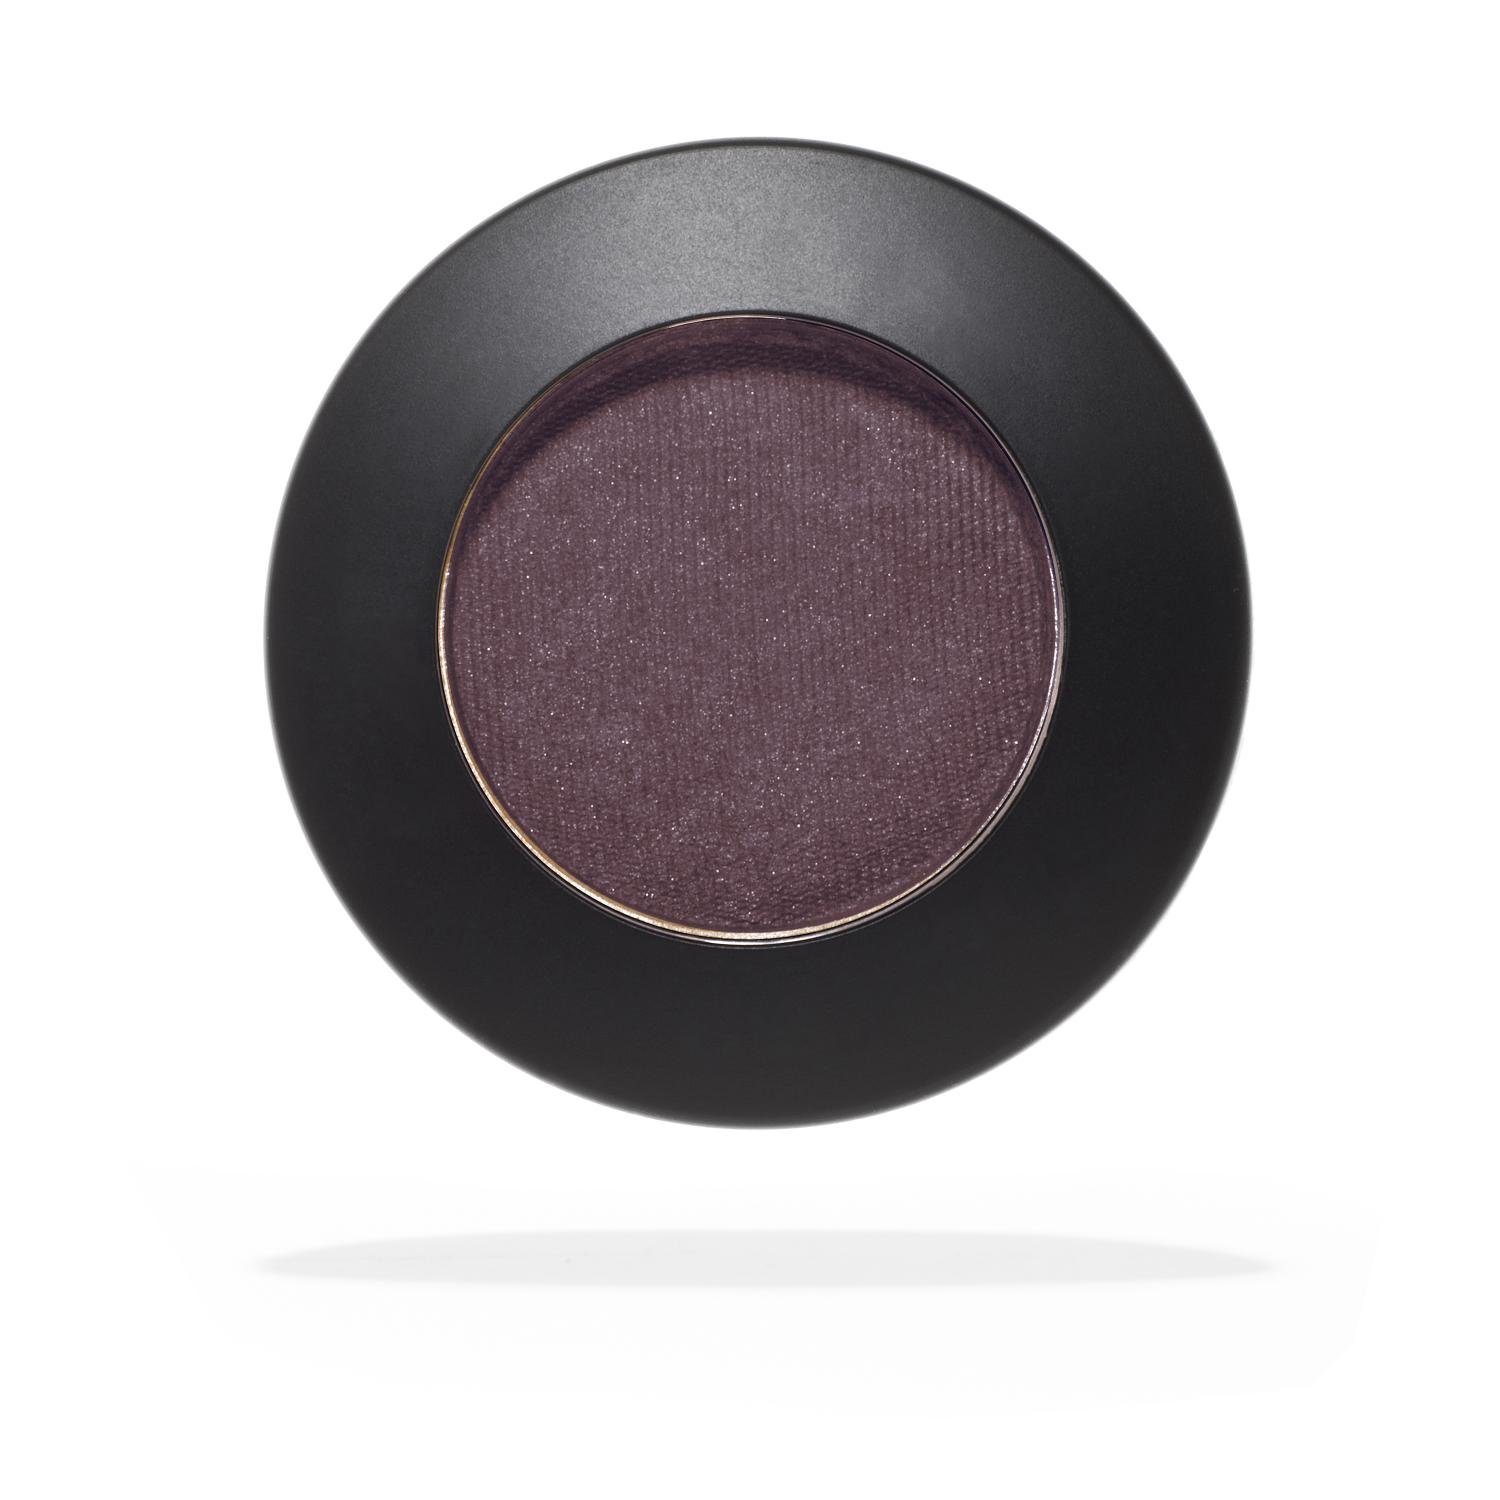 MALV - MICRONIZED EYE SHADOW